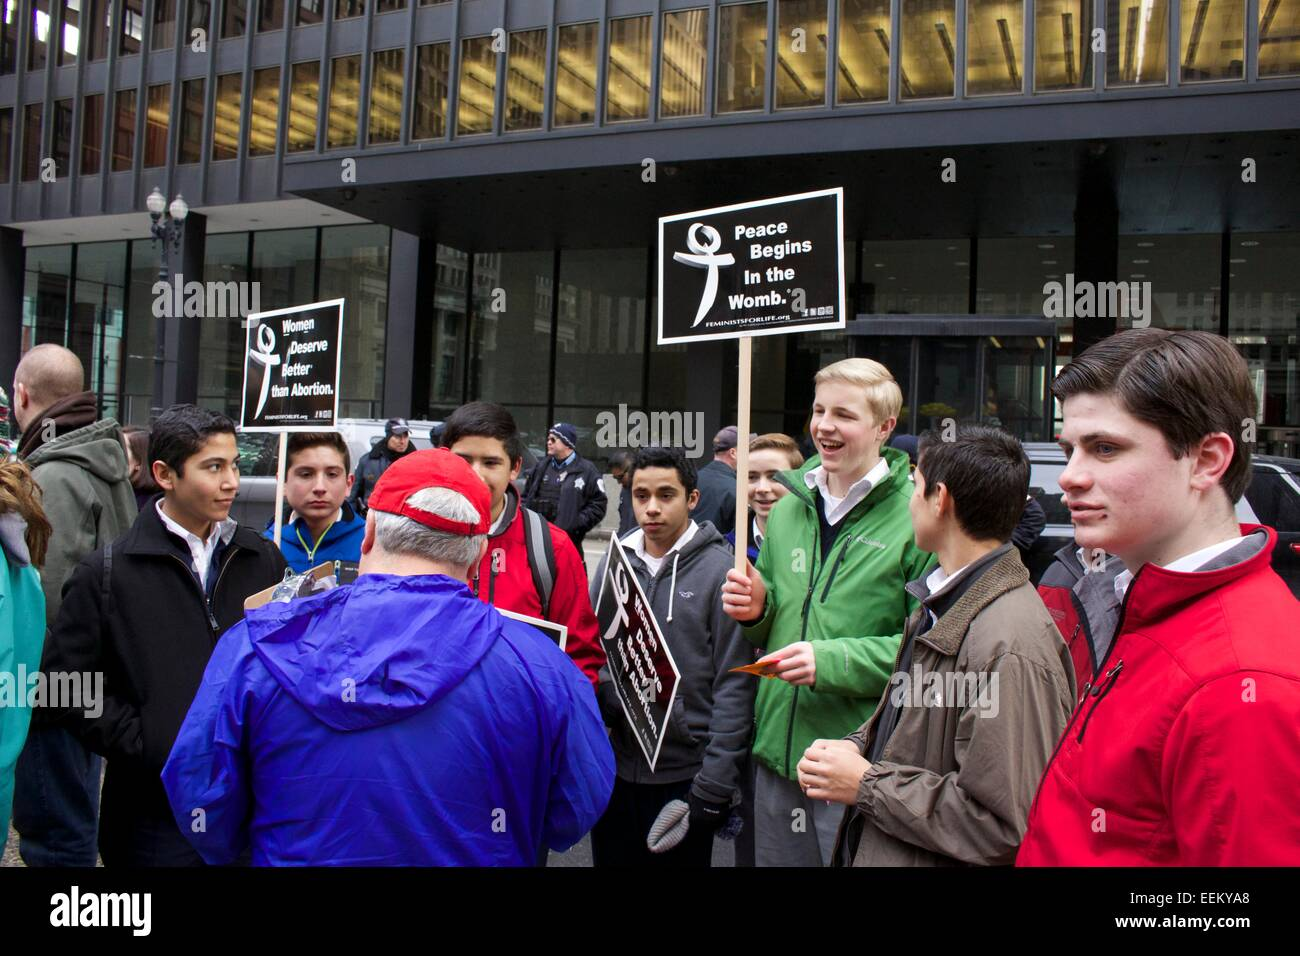 Male anti-abortion protesters. Chicago, Illinois. - Stock Image